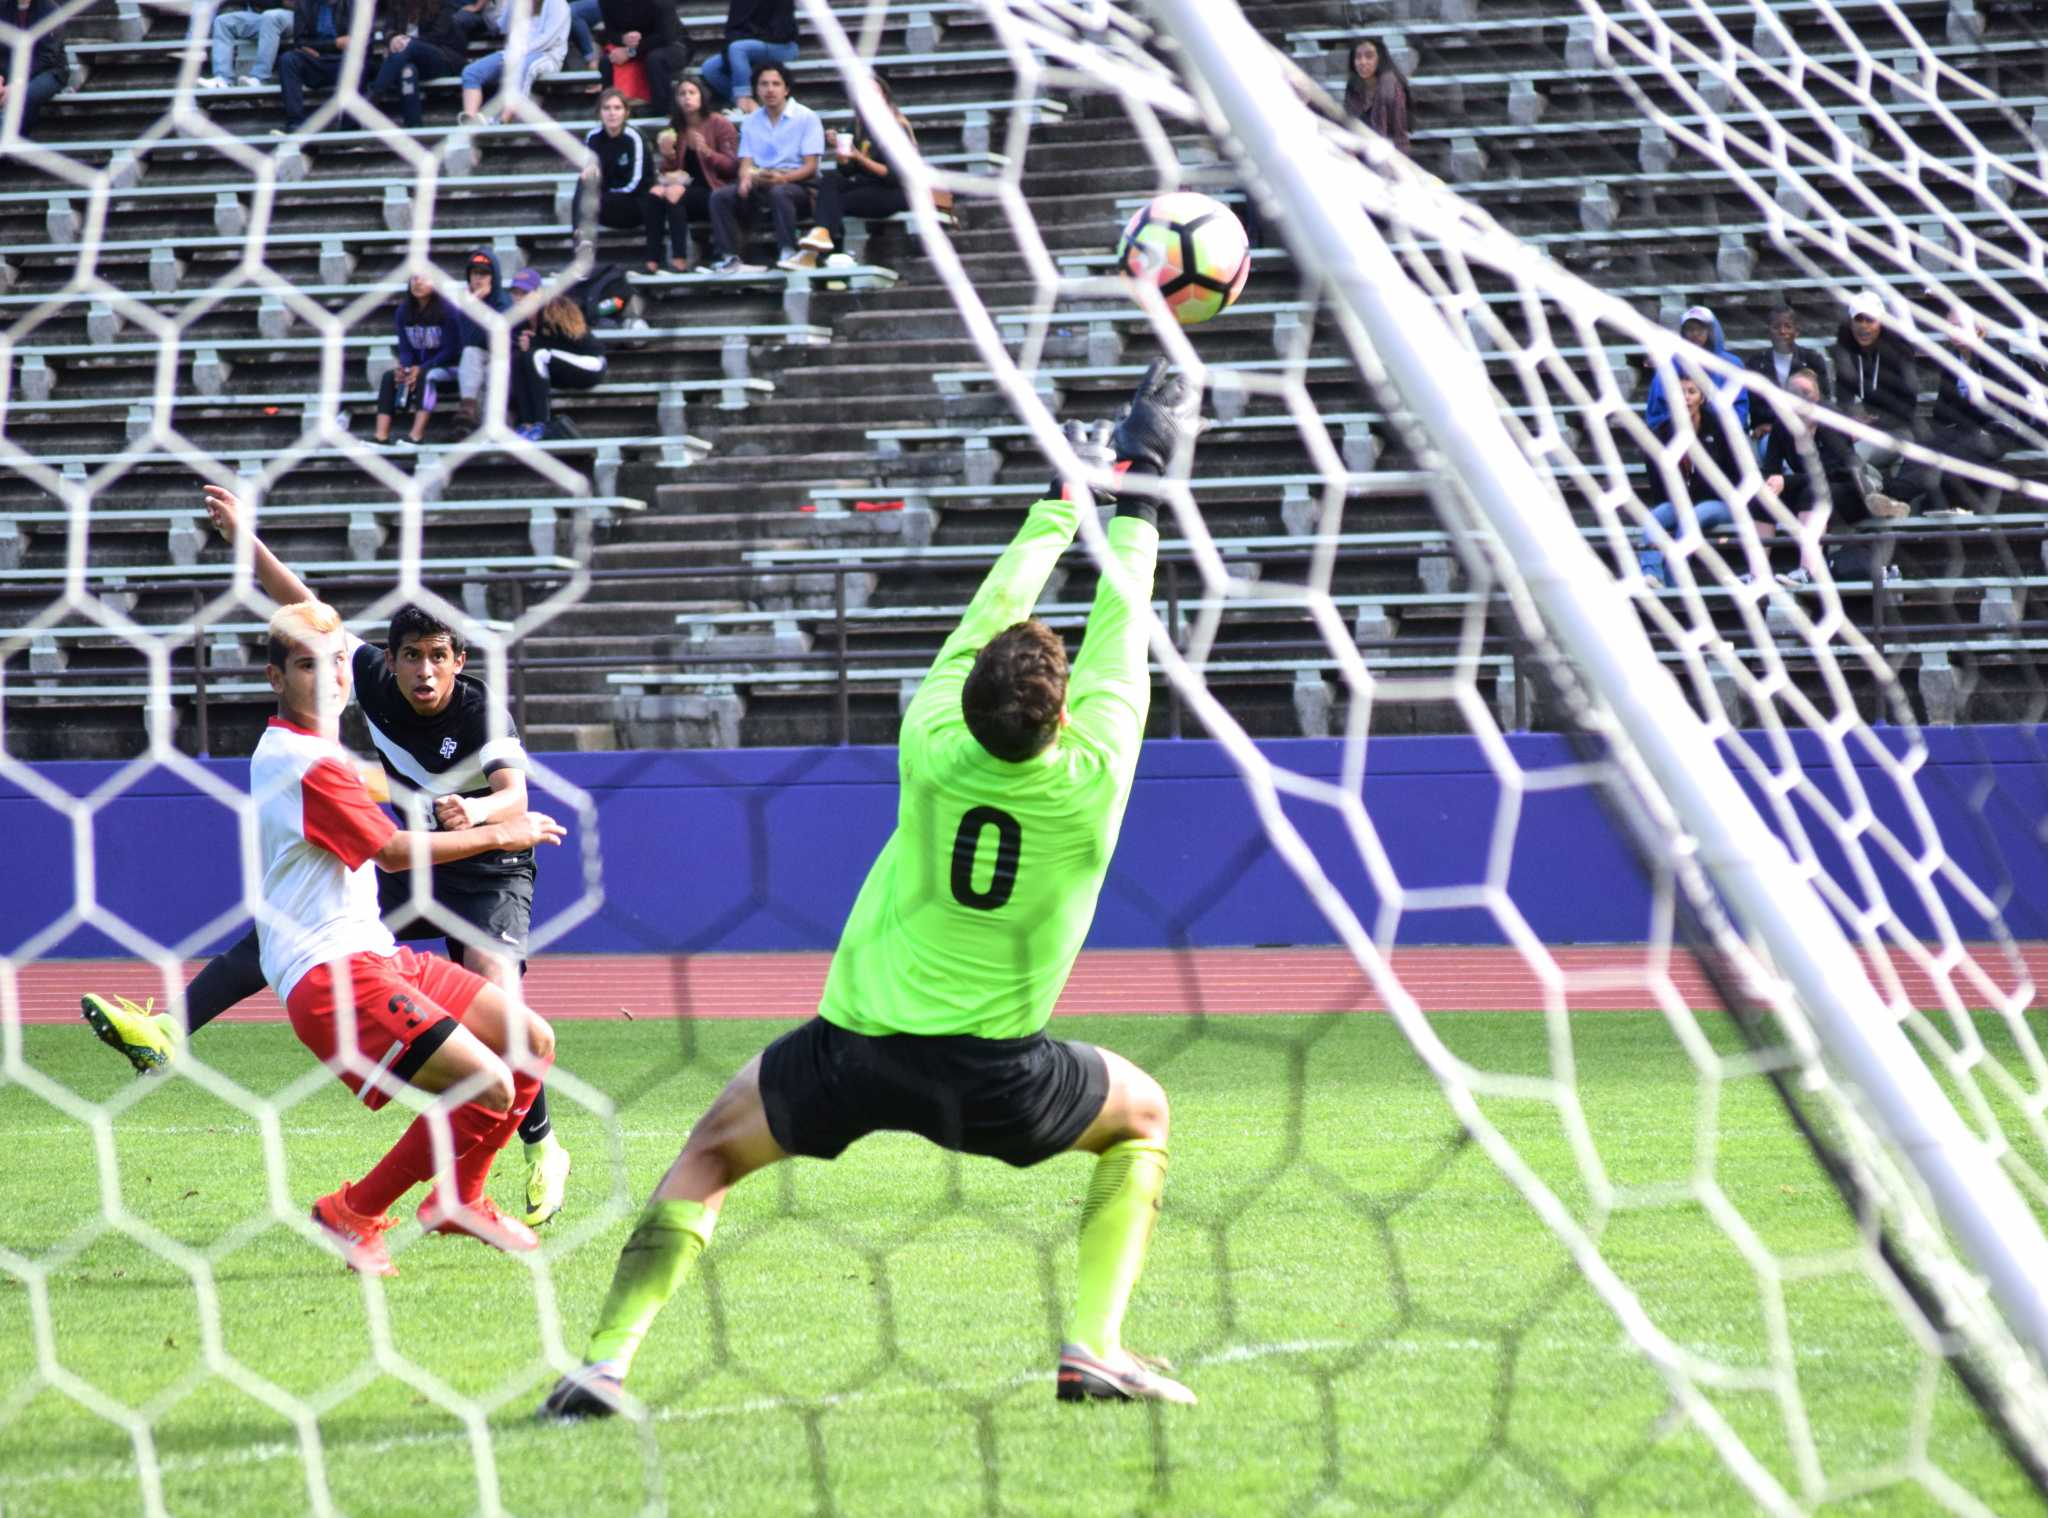 SF State freshman forward Richard Leon (8) boots a ball past the Stanislaus State's Warrior goalkeeper during their 2-0 win over the Warriors at Cox Stadium on Saturday, Oct. 29, 2016. Leon's kick hit the top of the goal post and would have been the third goal of the match.